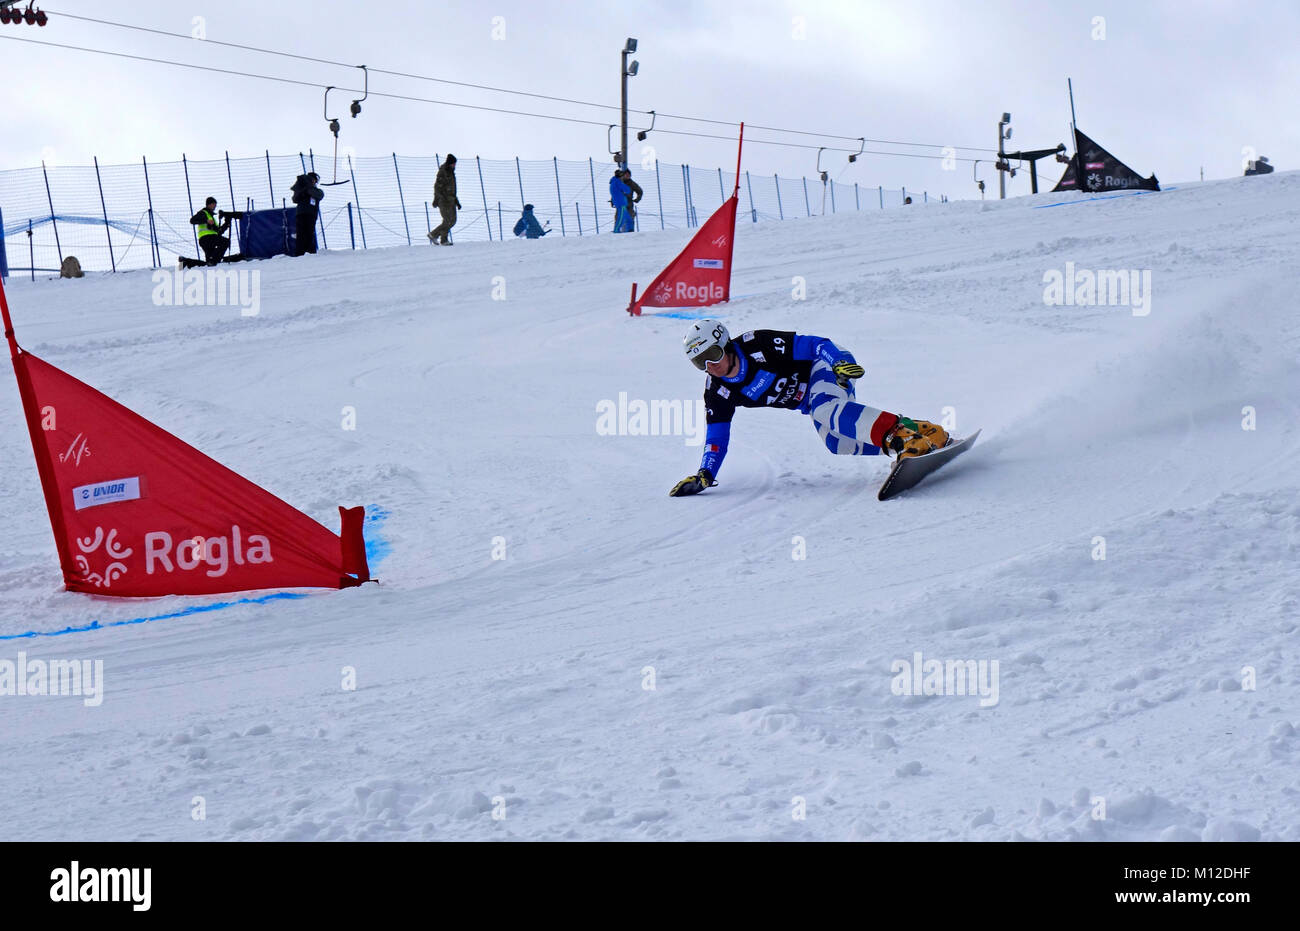 Snowboard Giant Slalom Competition.  Rogla ski resort, Slovenia. - Stock Image